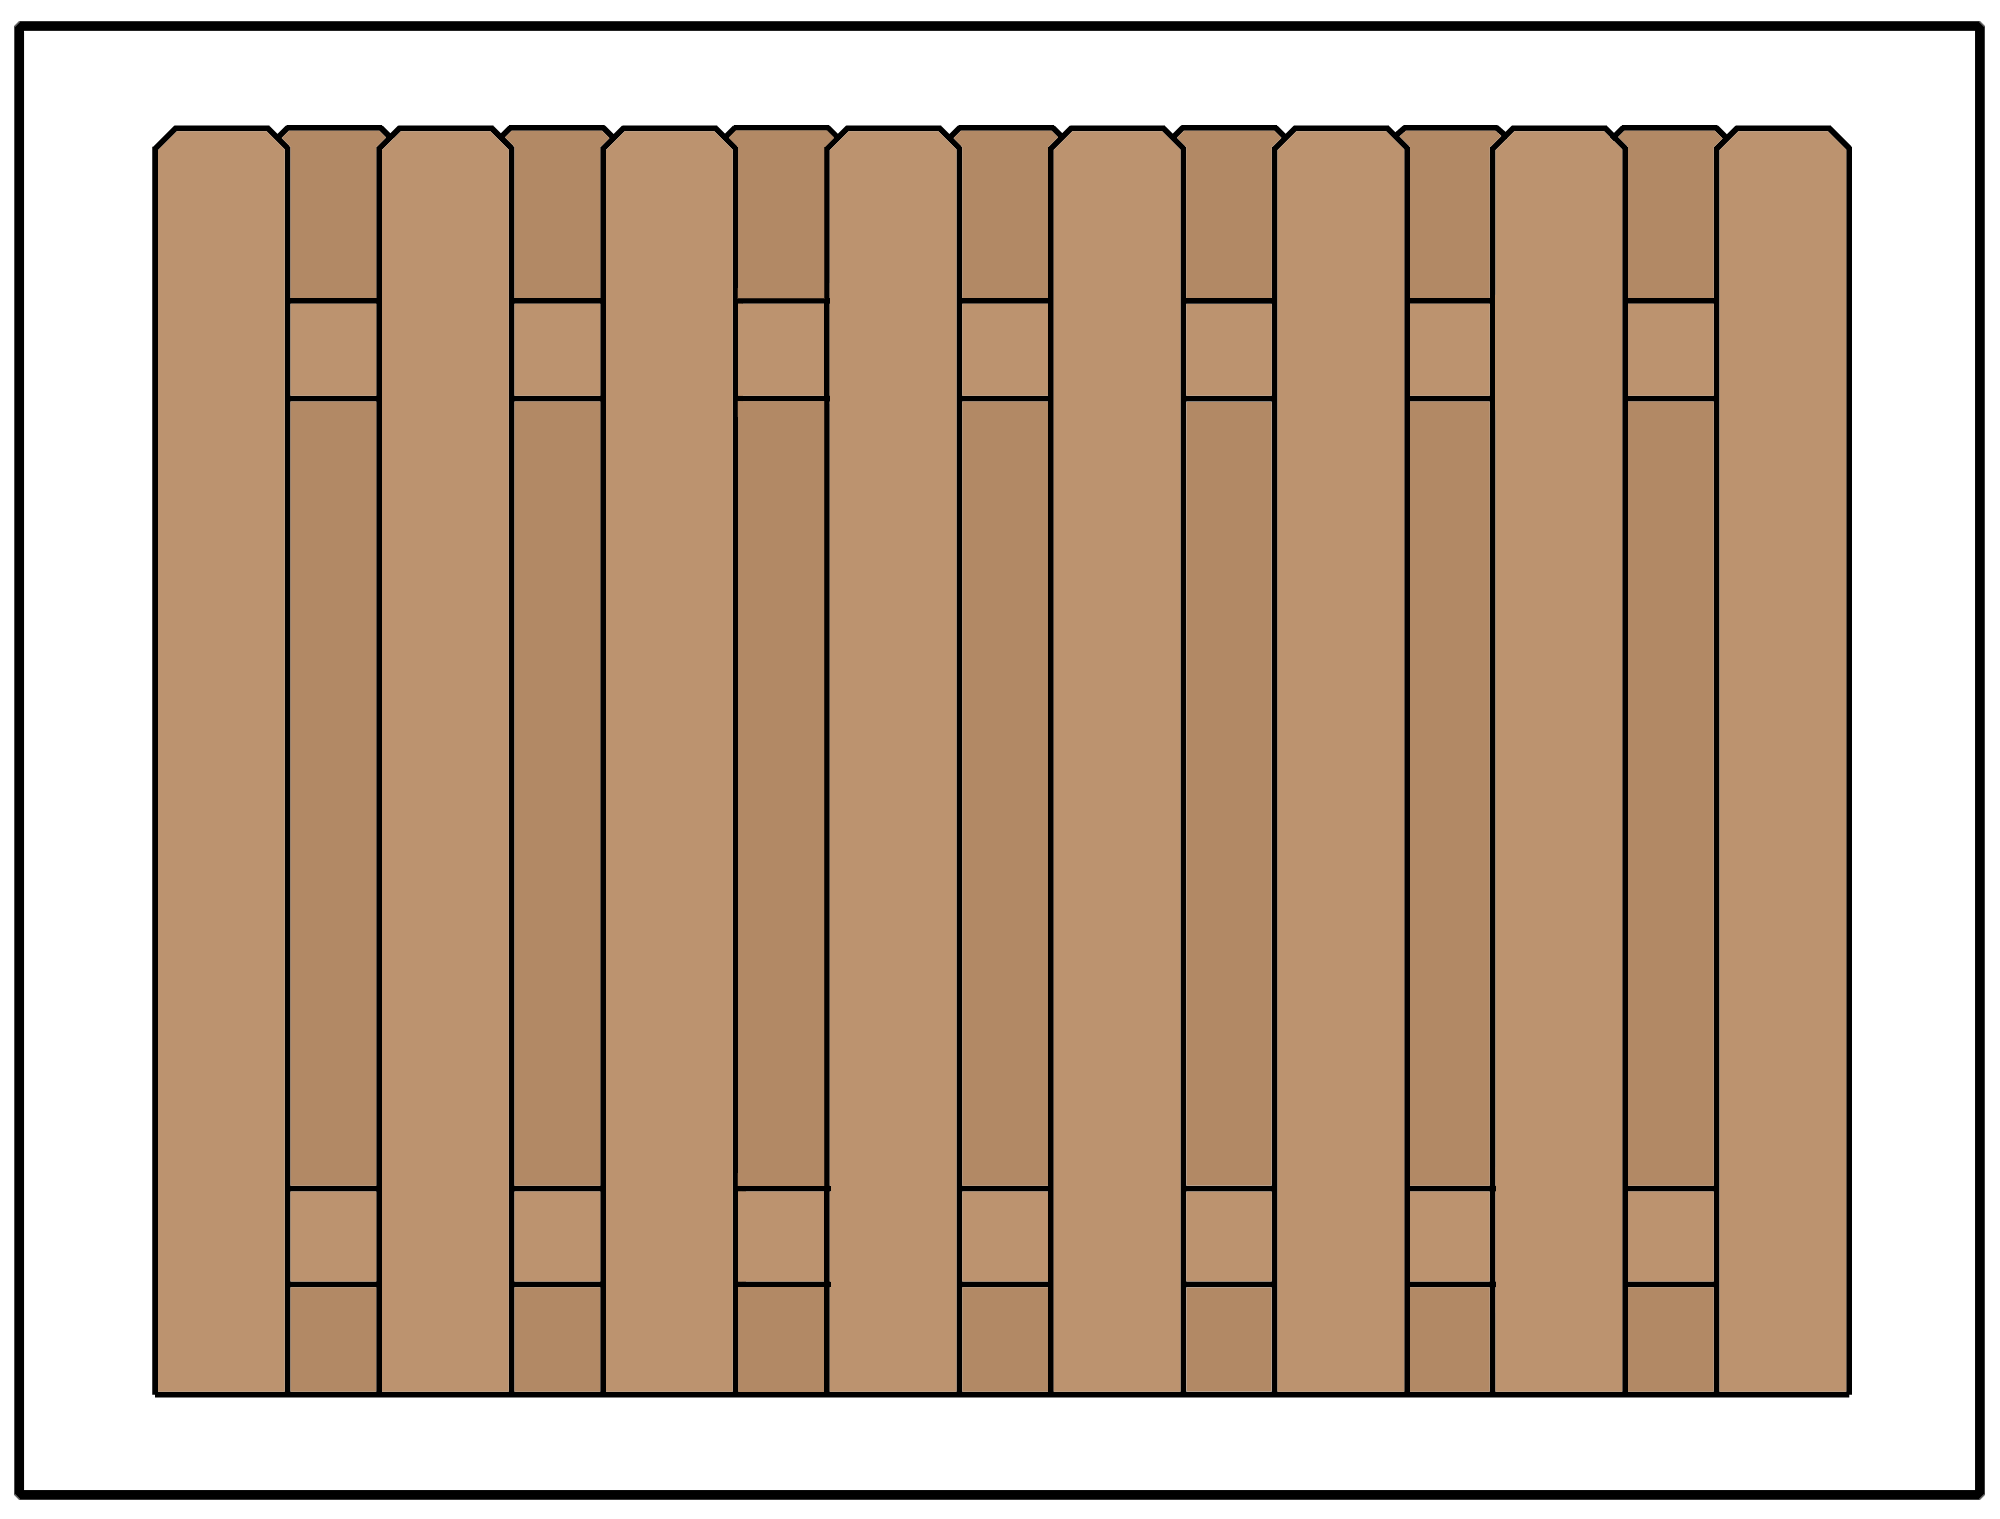 Shadowbox style privacy fence